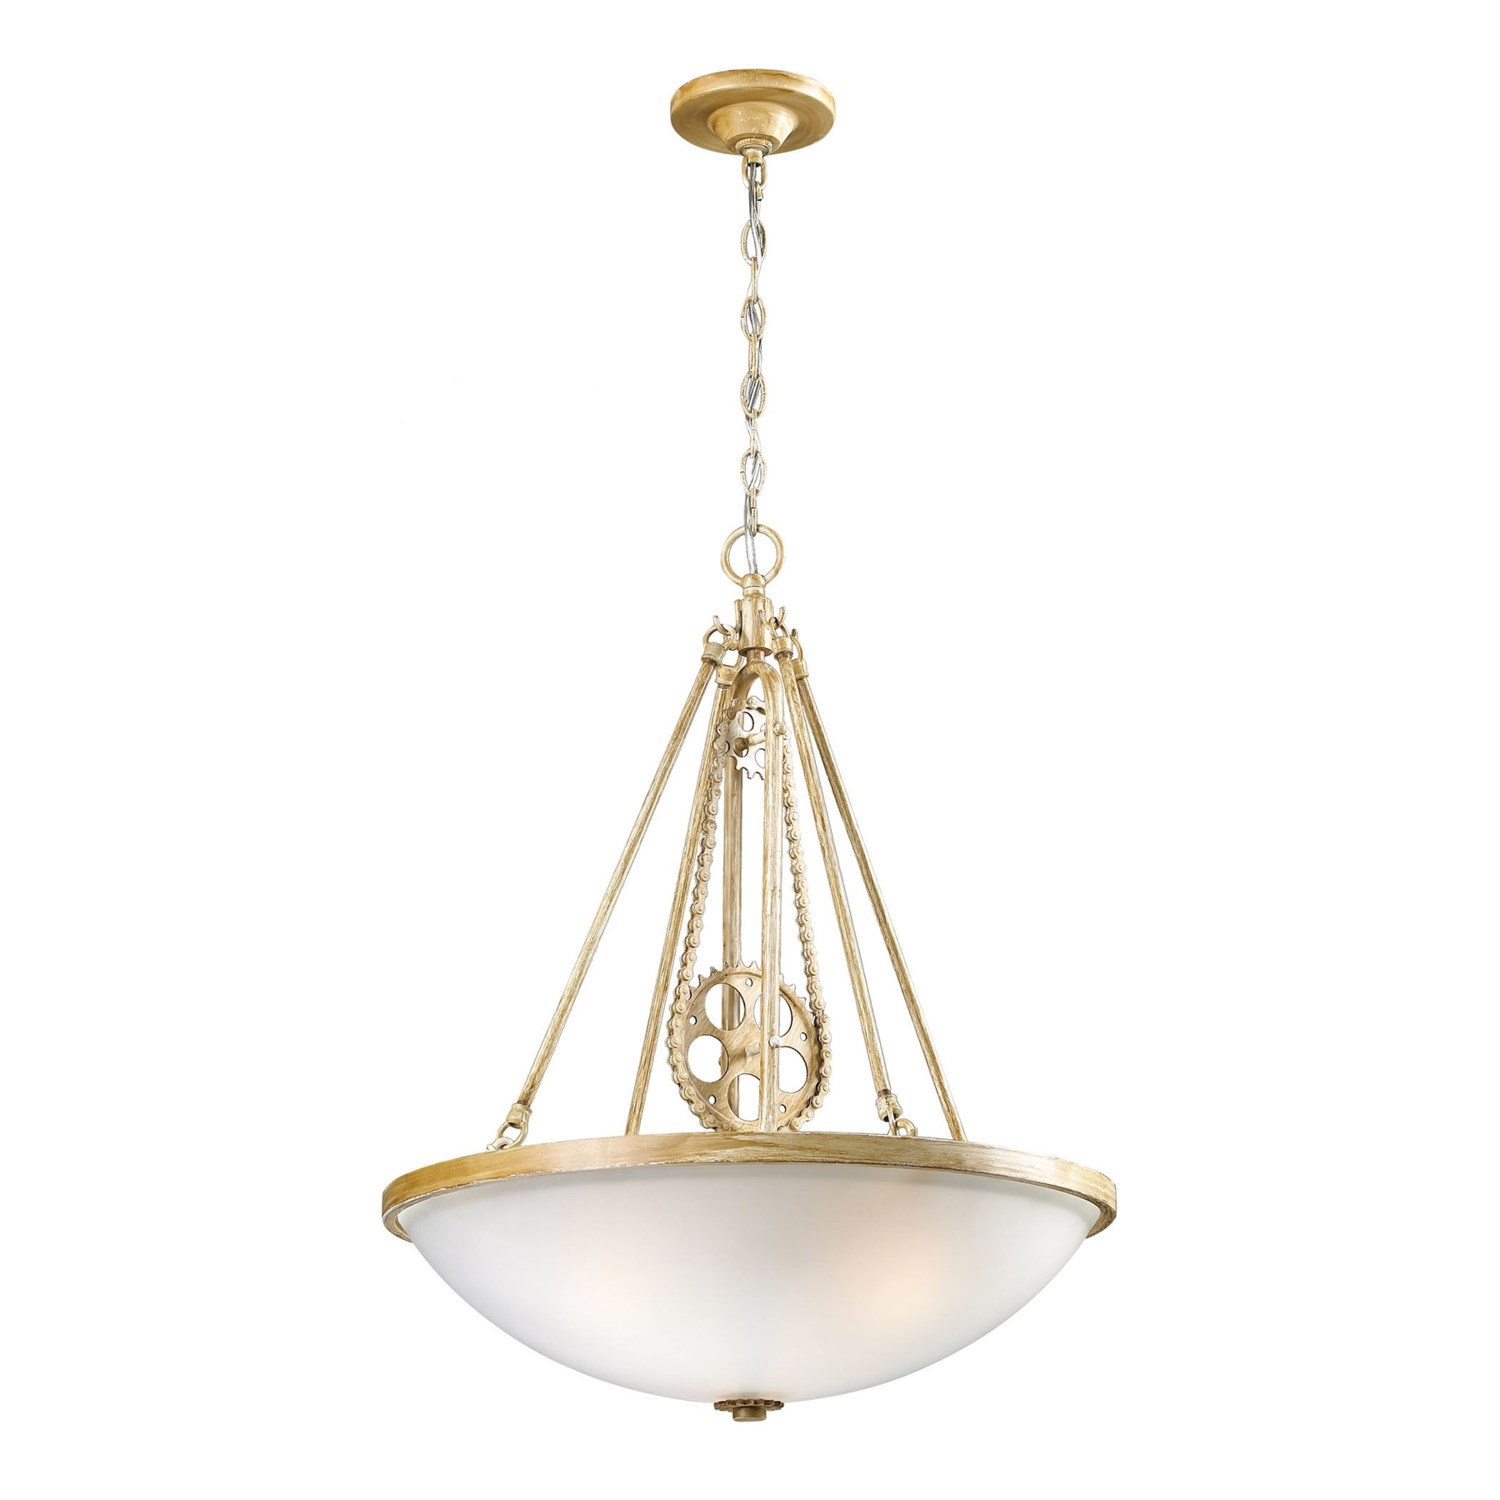 Pendant Lighting On Chain : Landmark lighting cog and chain light pendant in